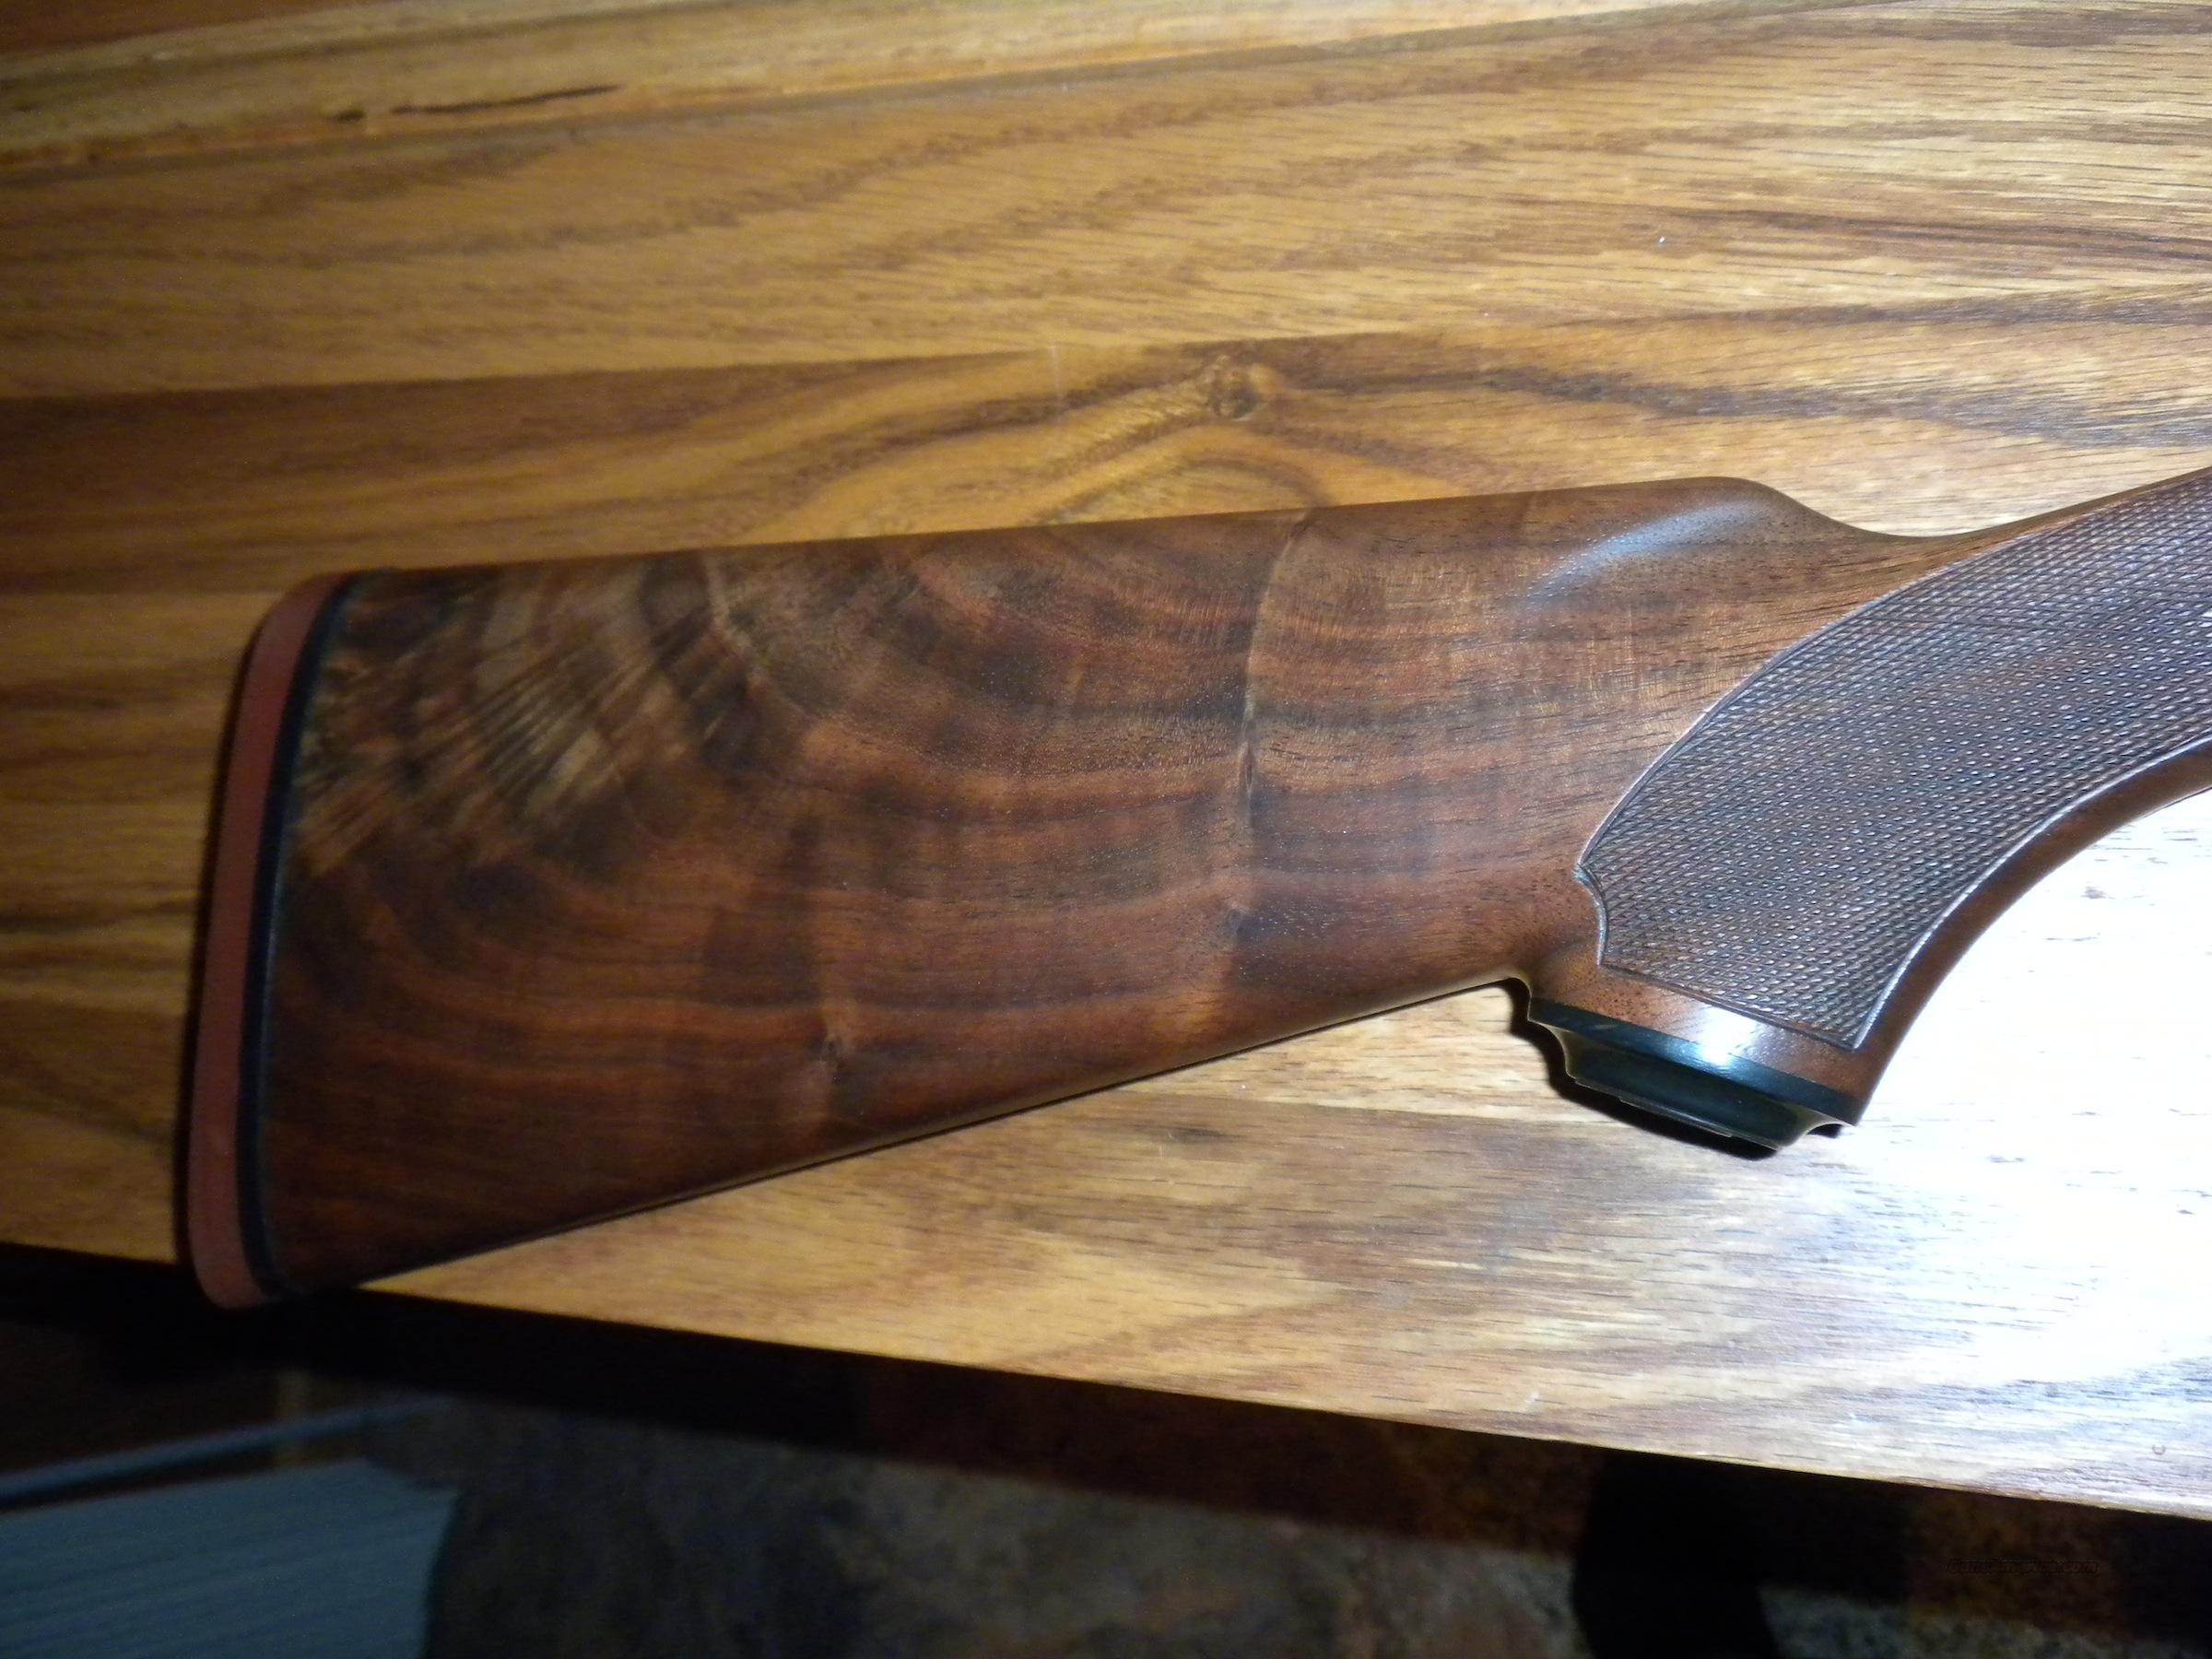 Ruger Red Label 20 Guage O/U  Guns > Shotguns > Ruger Shotguns > Hunting